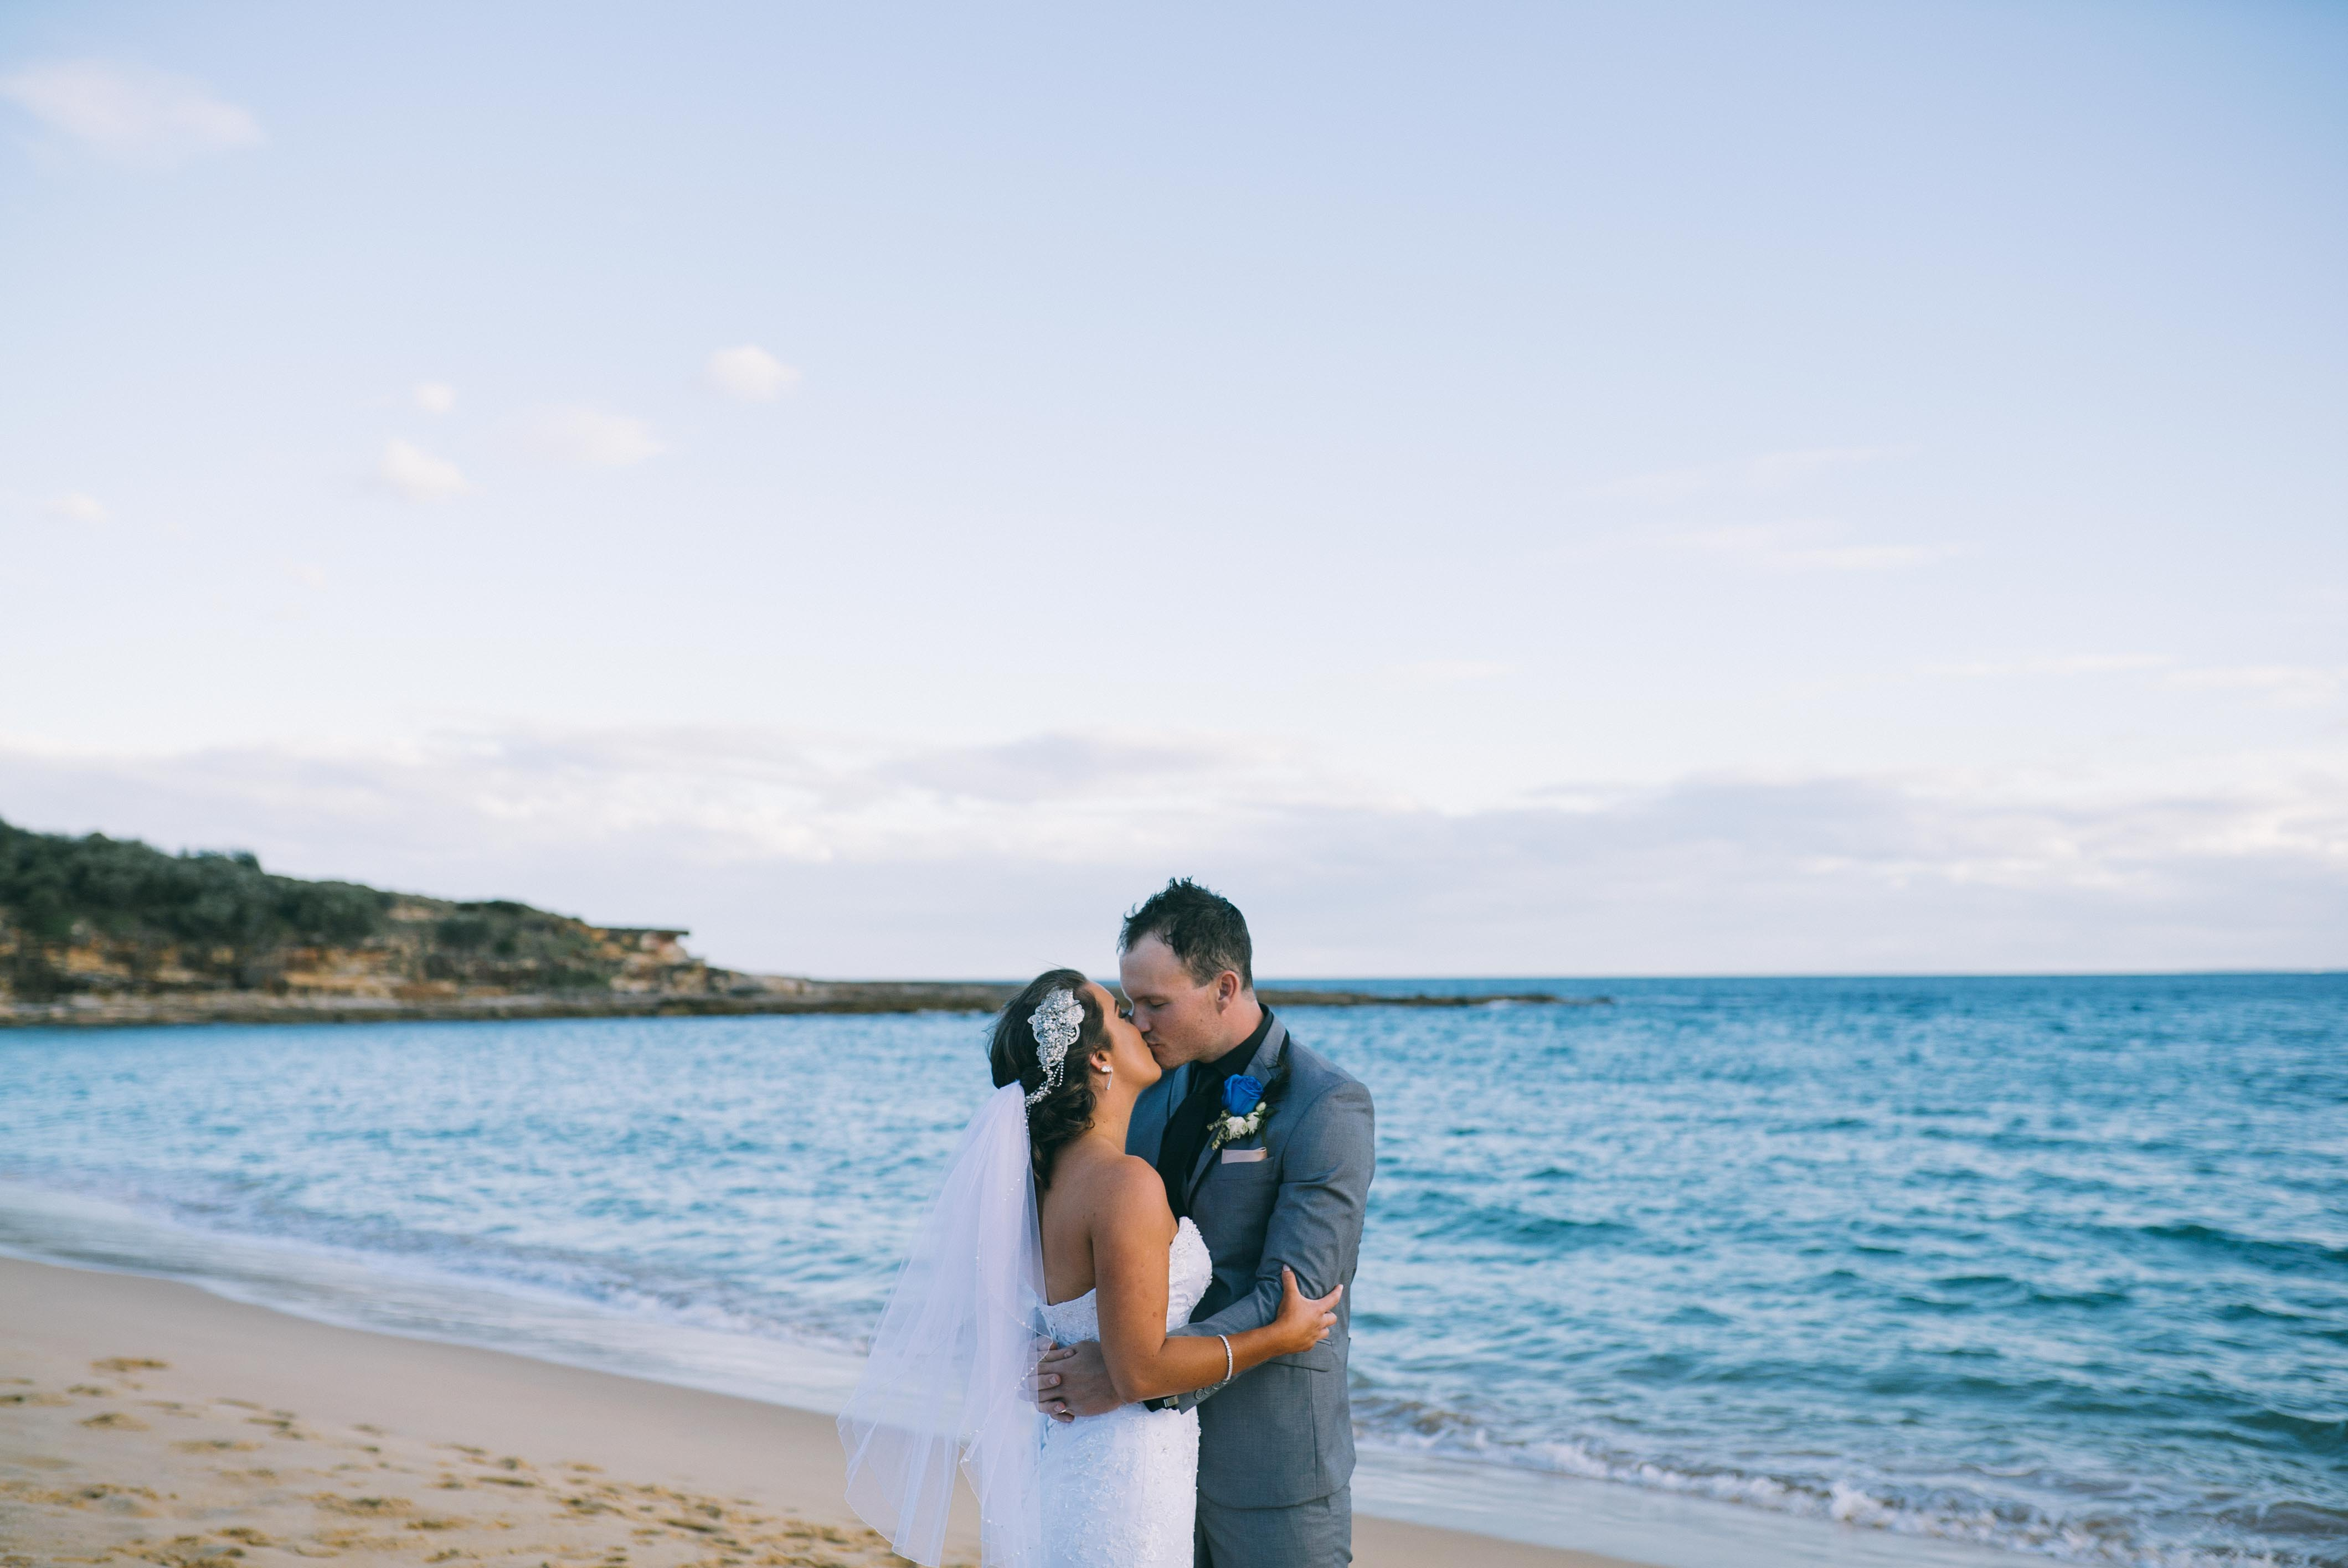 Troy + Kate | 10/09/2016 | Bells at Kilcare, Central Coast, NSW